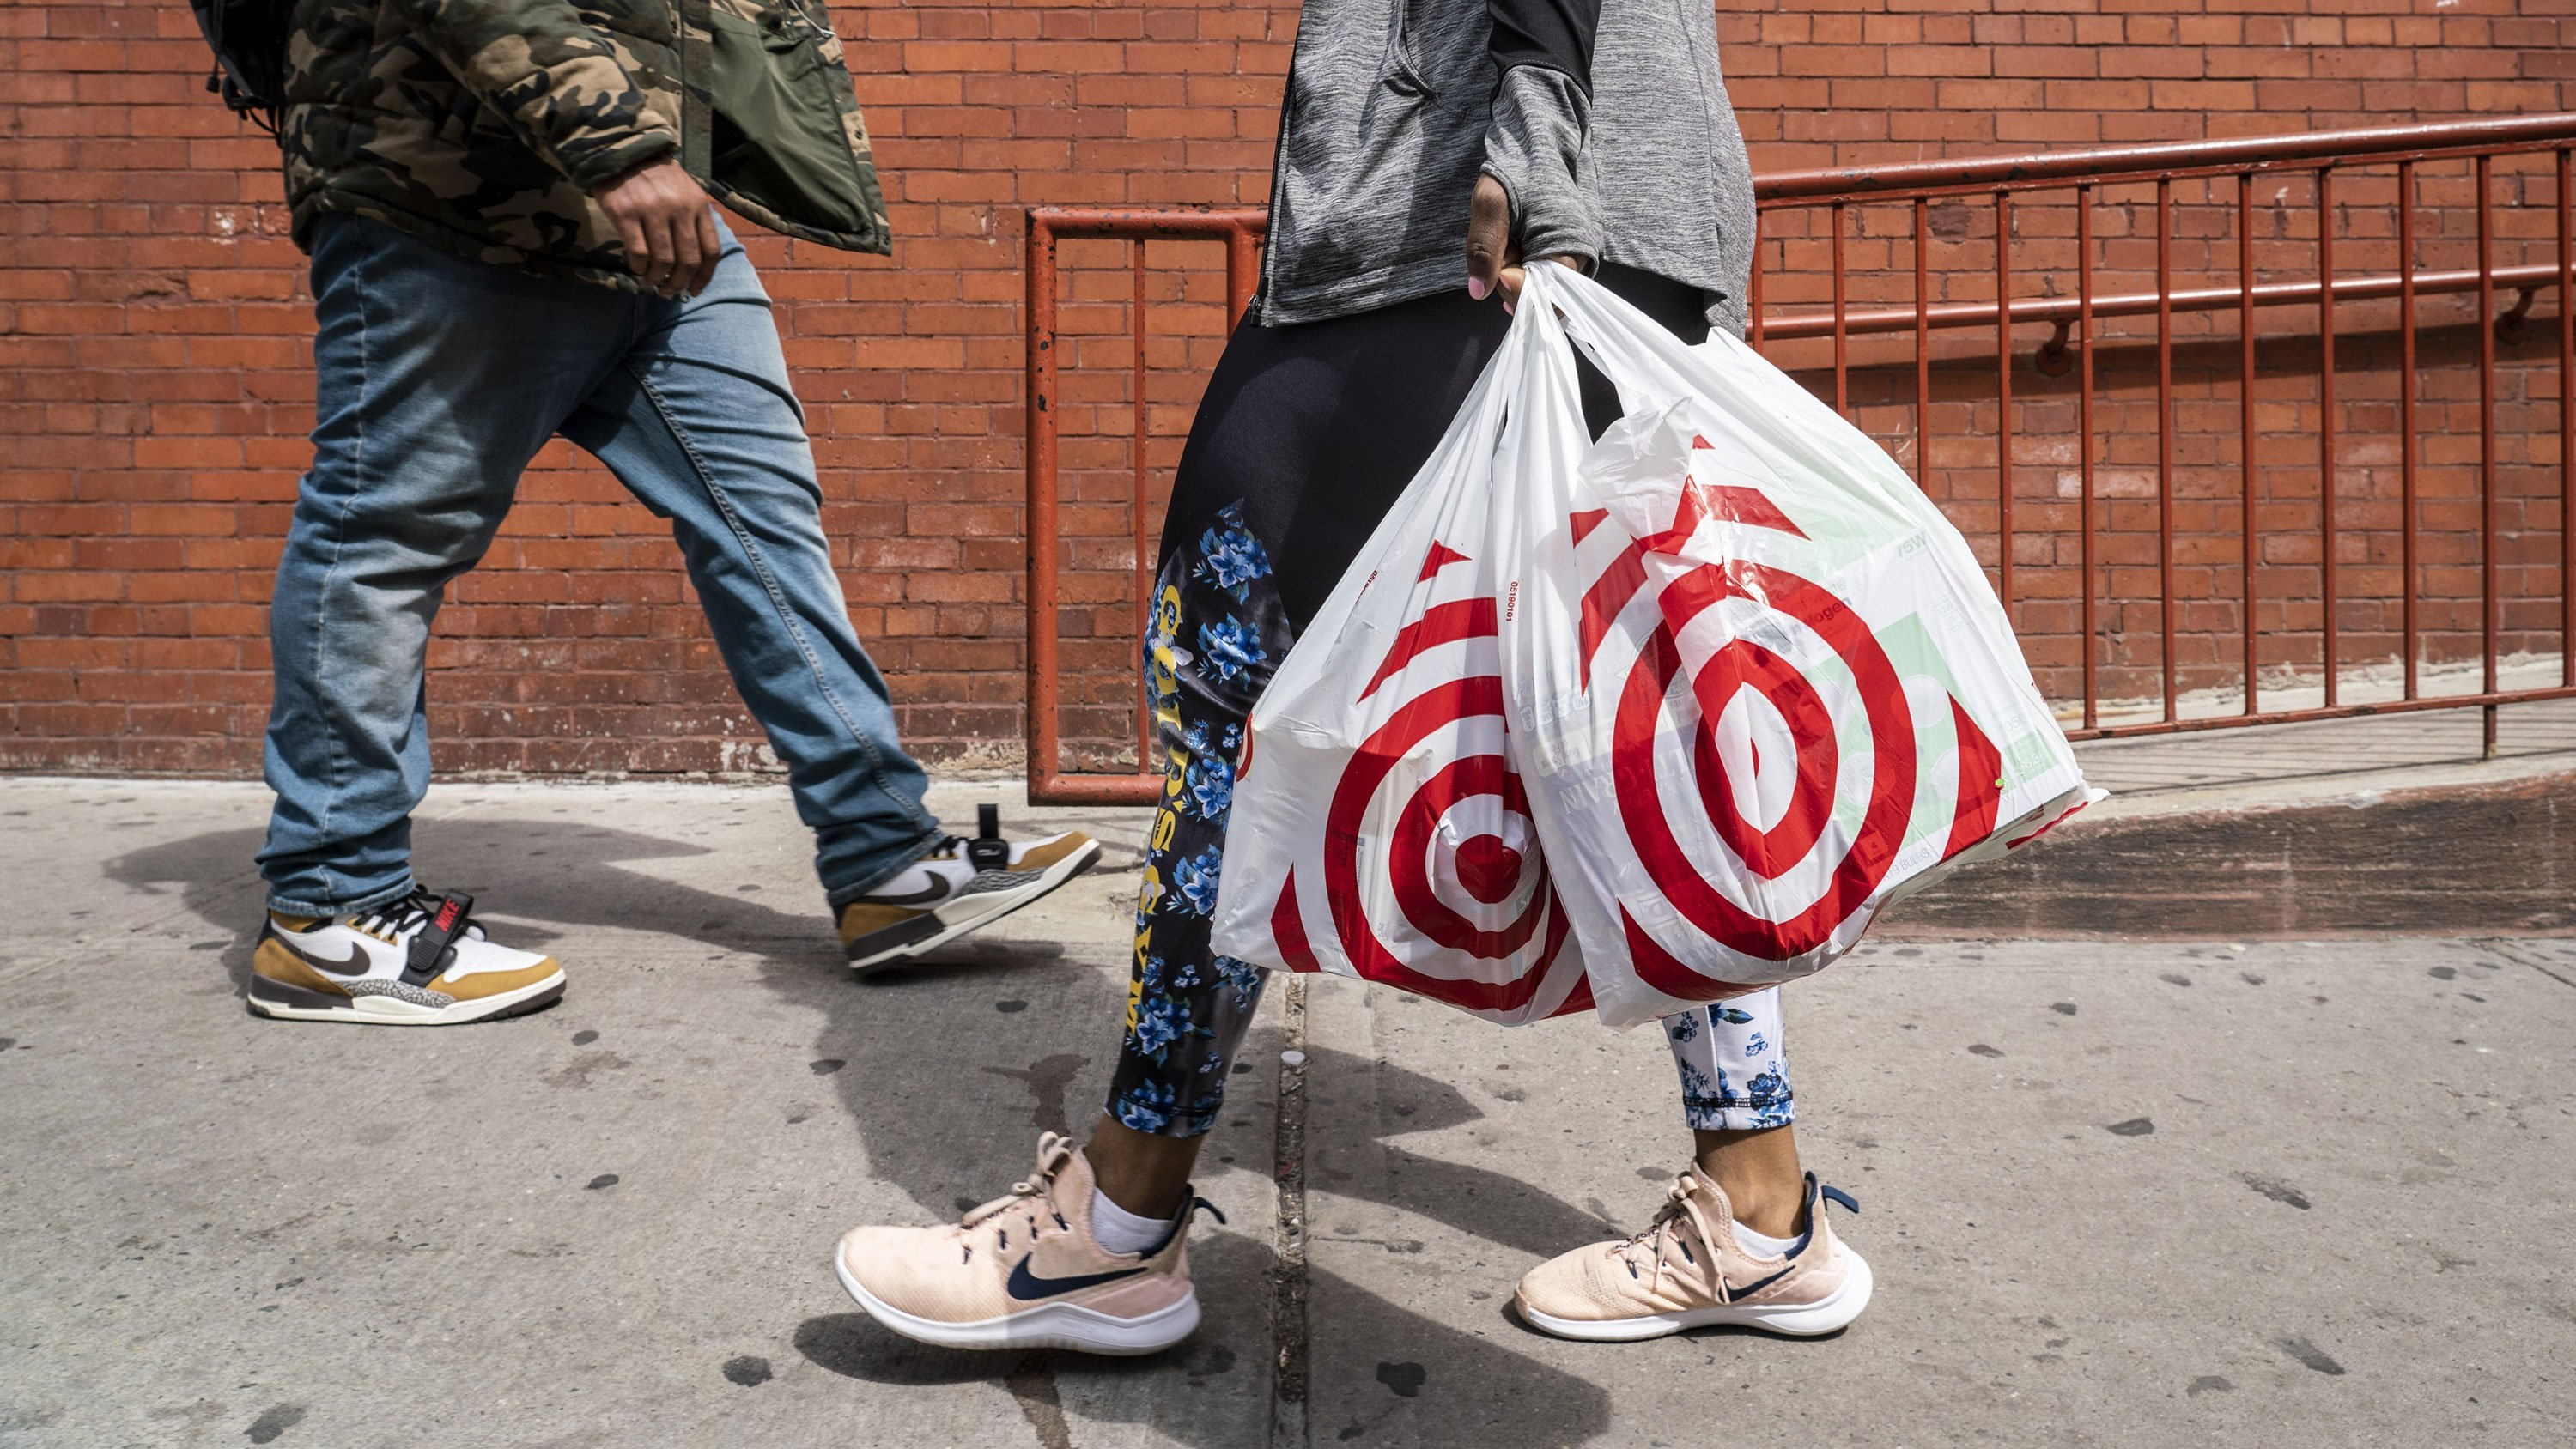 It's a big week for retail. The stakes just got higher